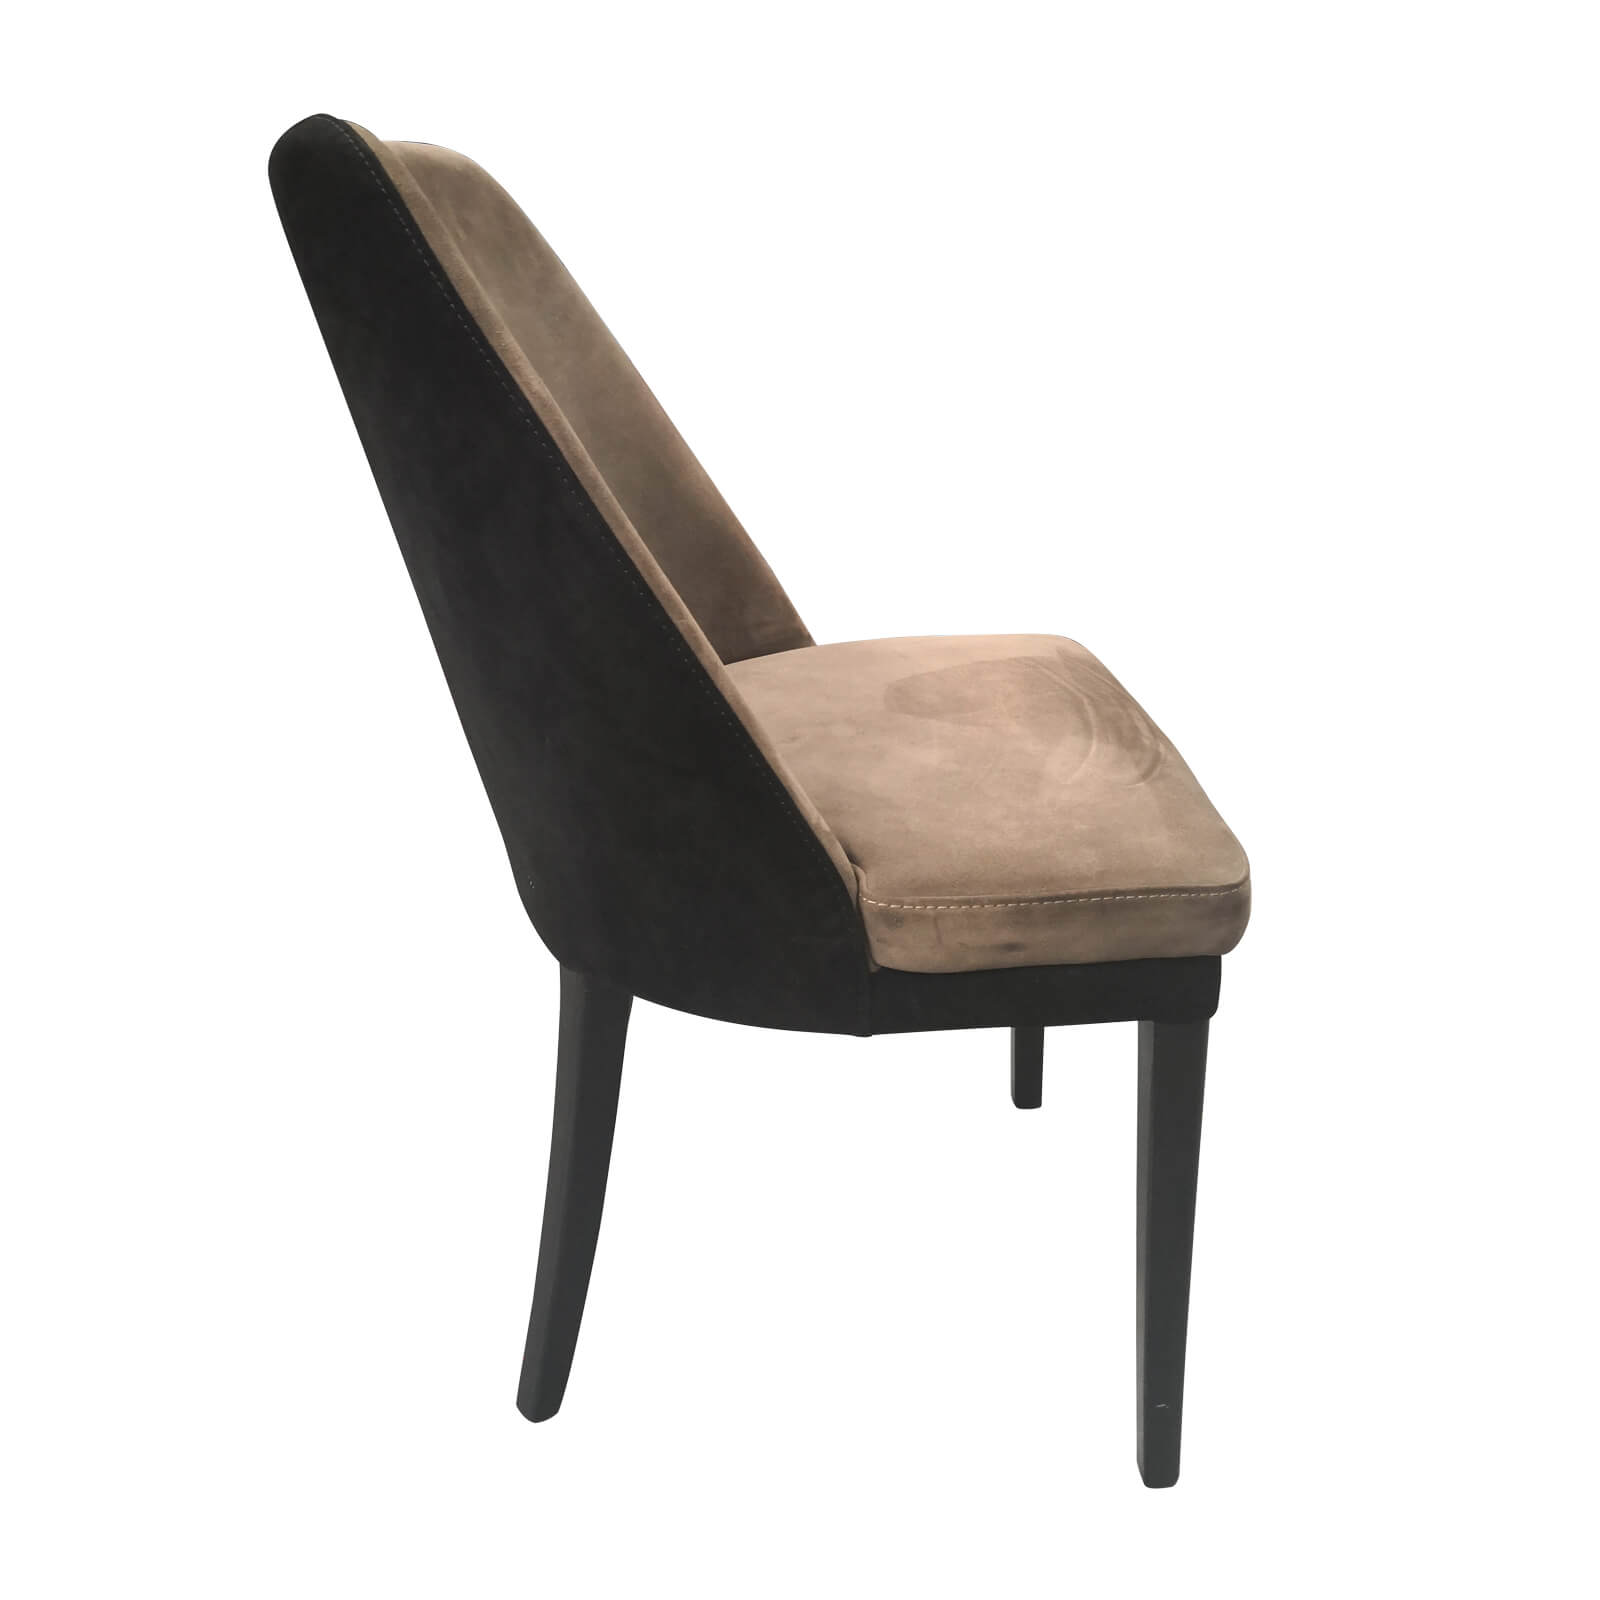 two design lovers nubuck dining chair side